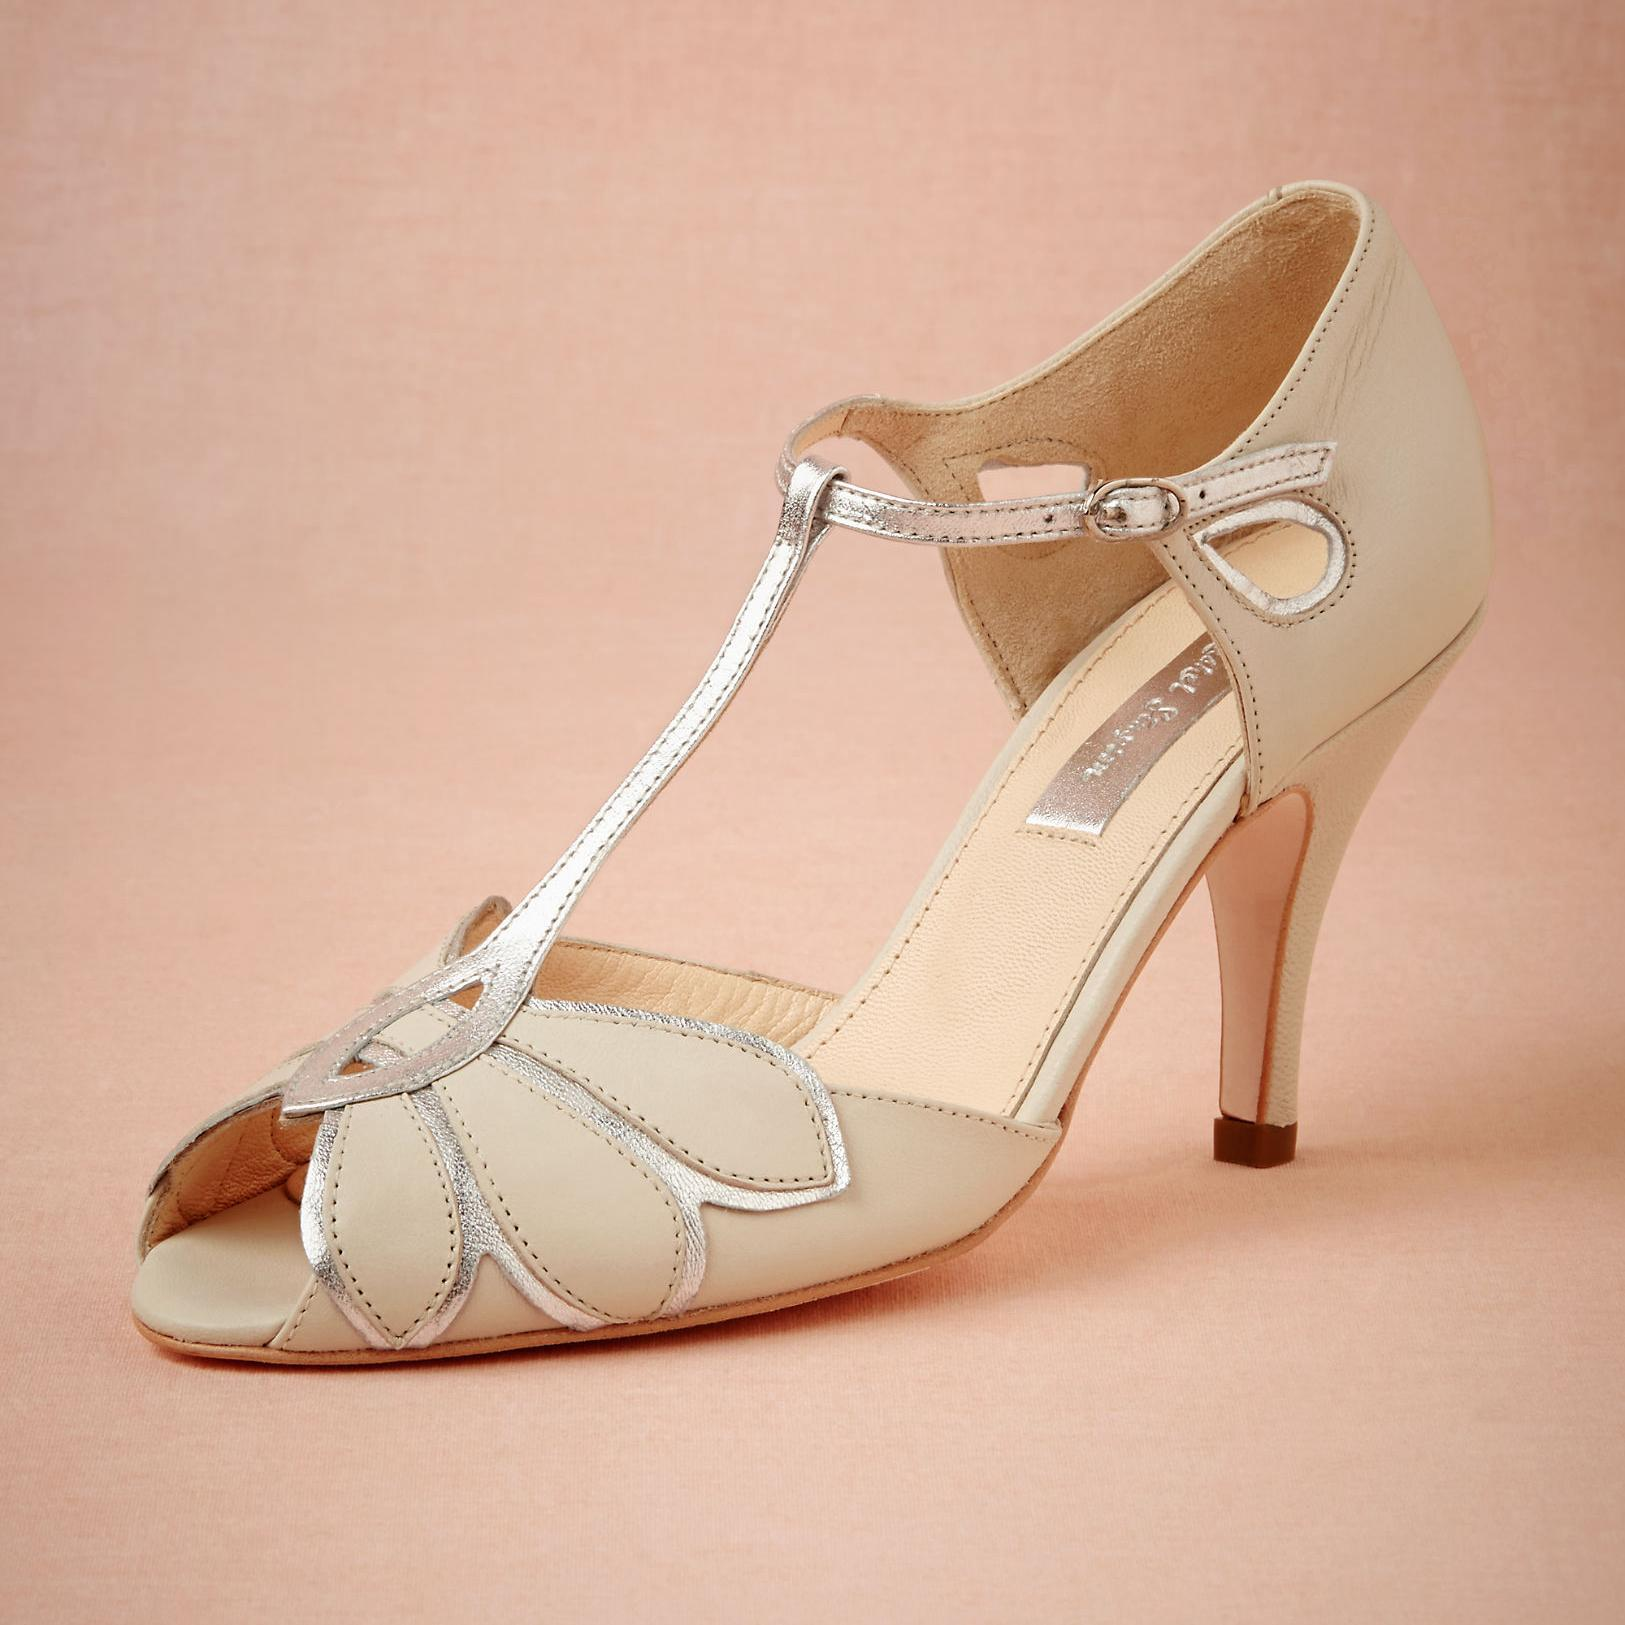 Vintage Ivory Wedding Shoes Wedding Pumps Mimosa T Straps Buckle Closure  Leather Party Dance 3.5 Heels Women Sandals Short Wedding Boots Flat Wedding  Shoes ...